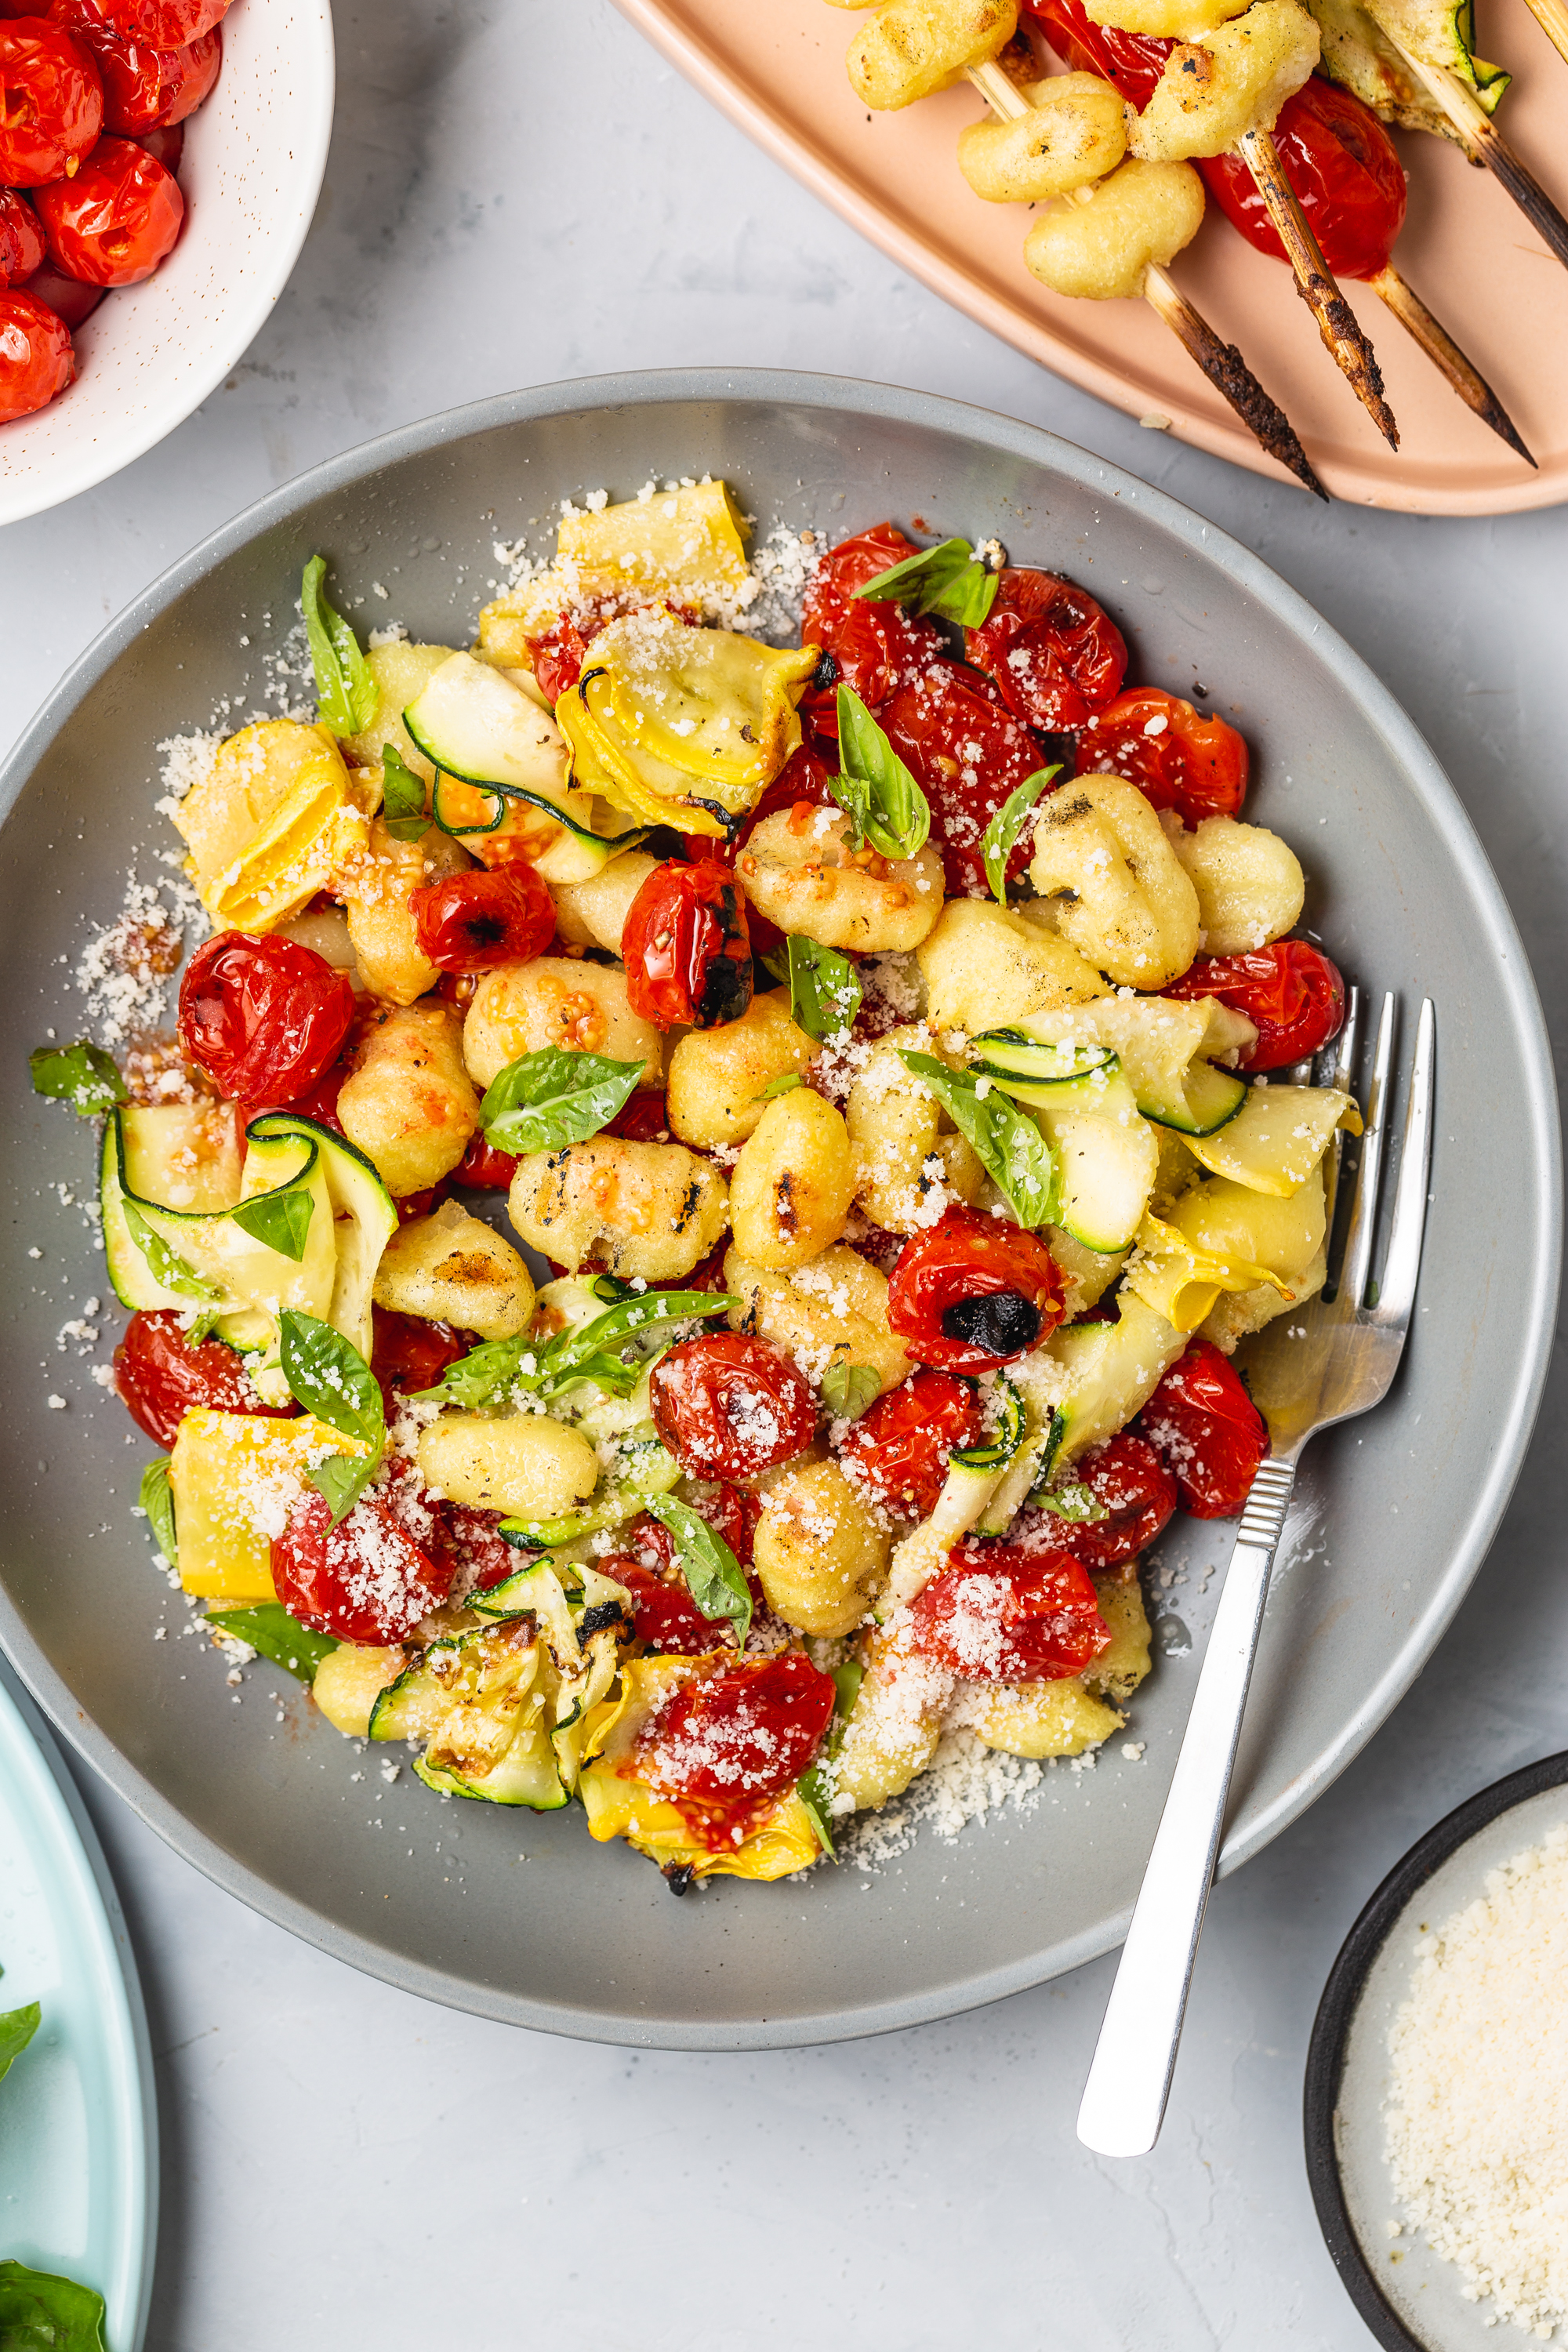 This Ingenious Trick Will Give You the Best, Crispiest Gnocchi All Summer Long